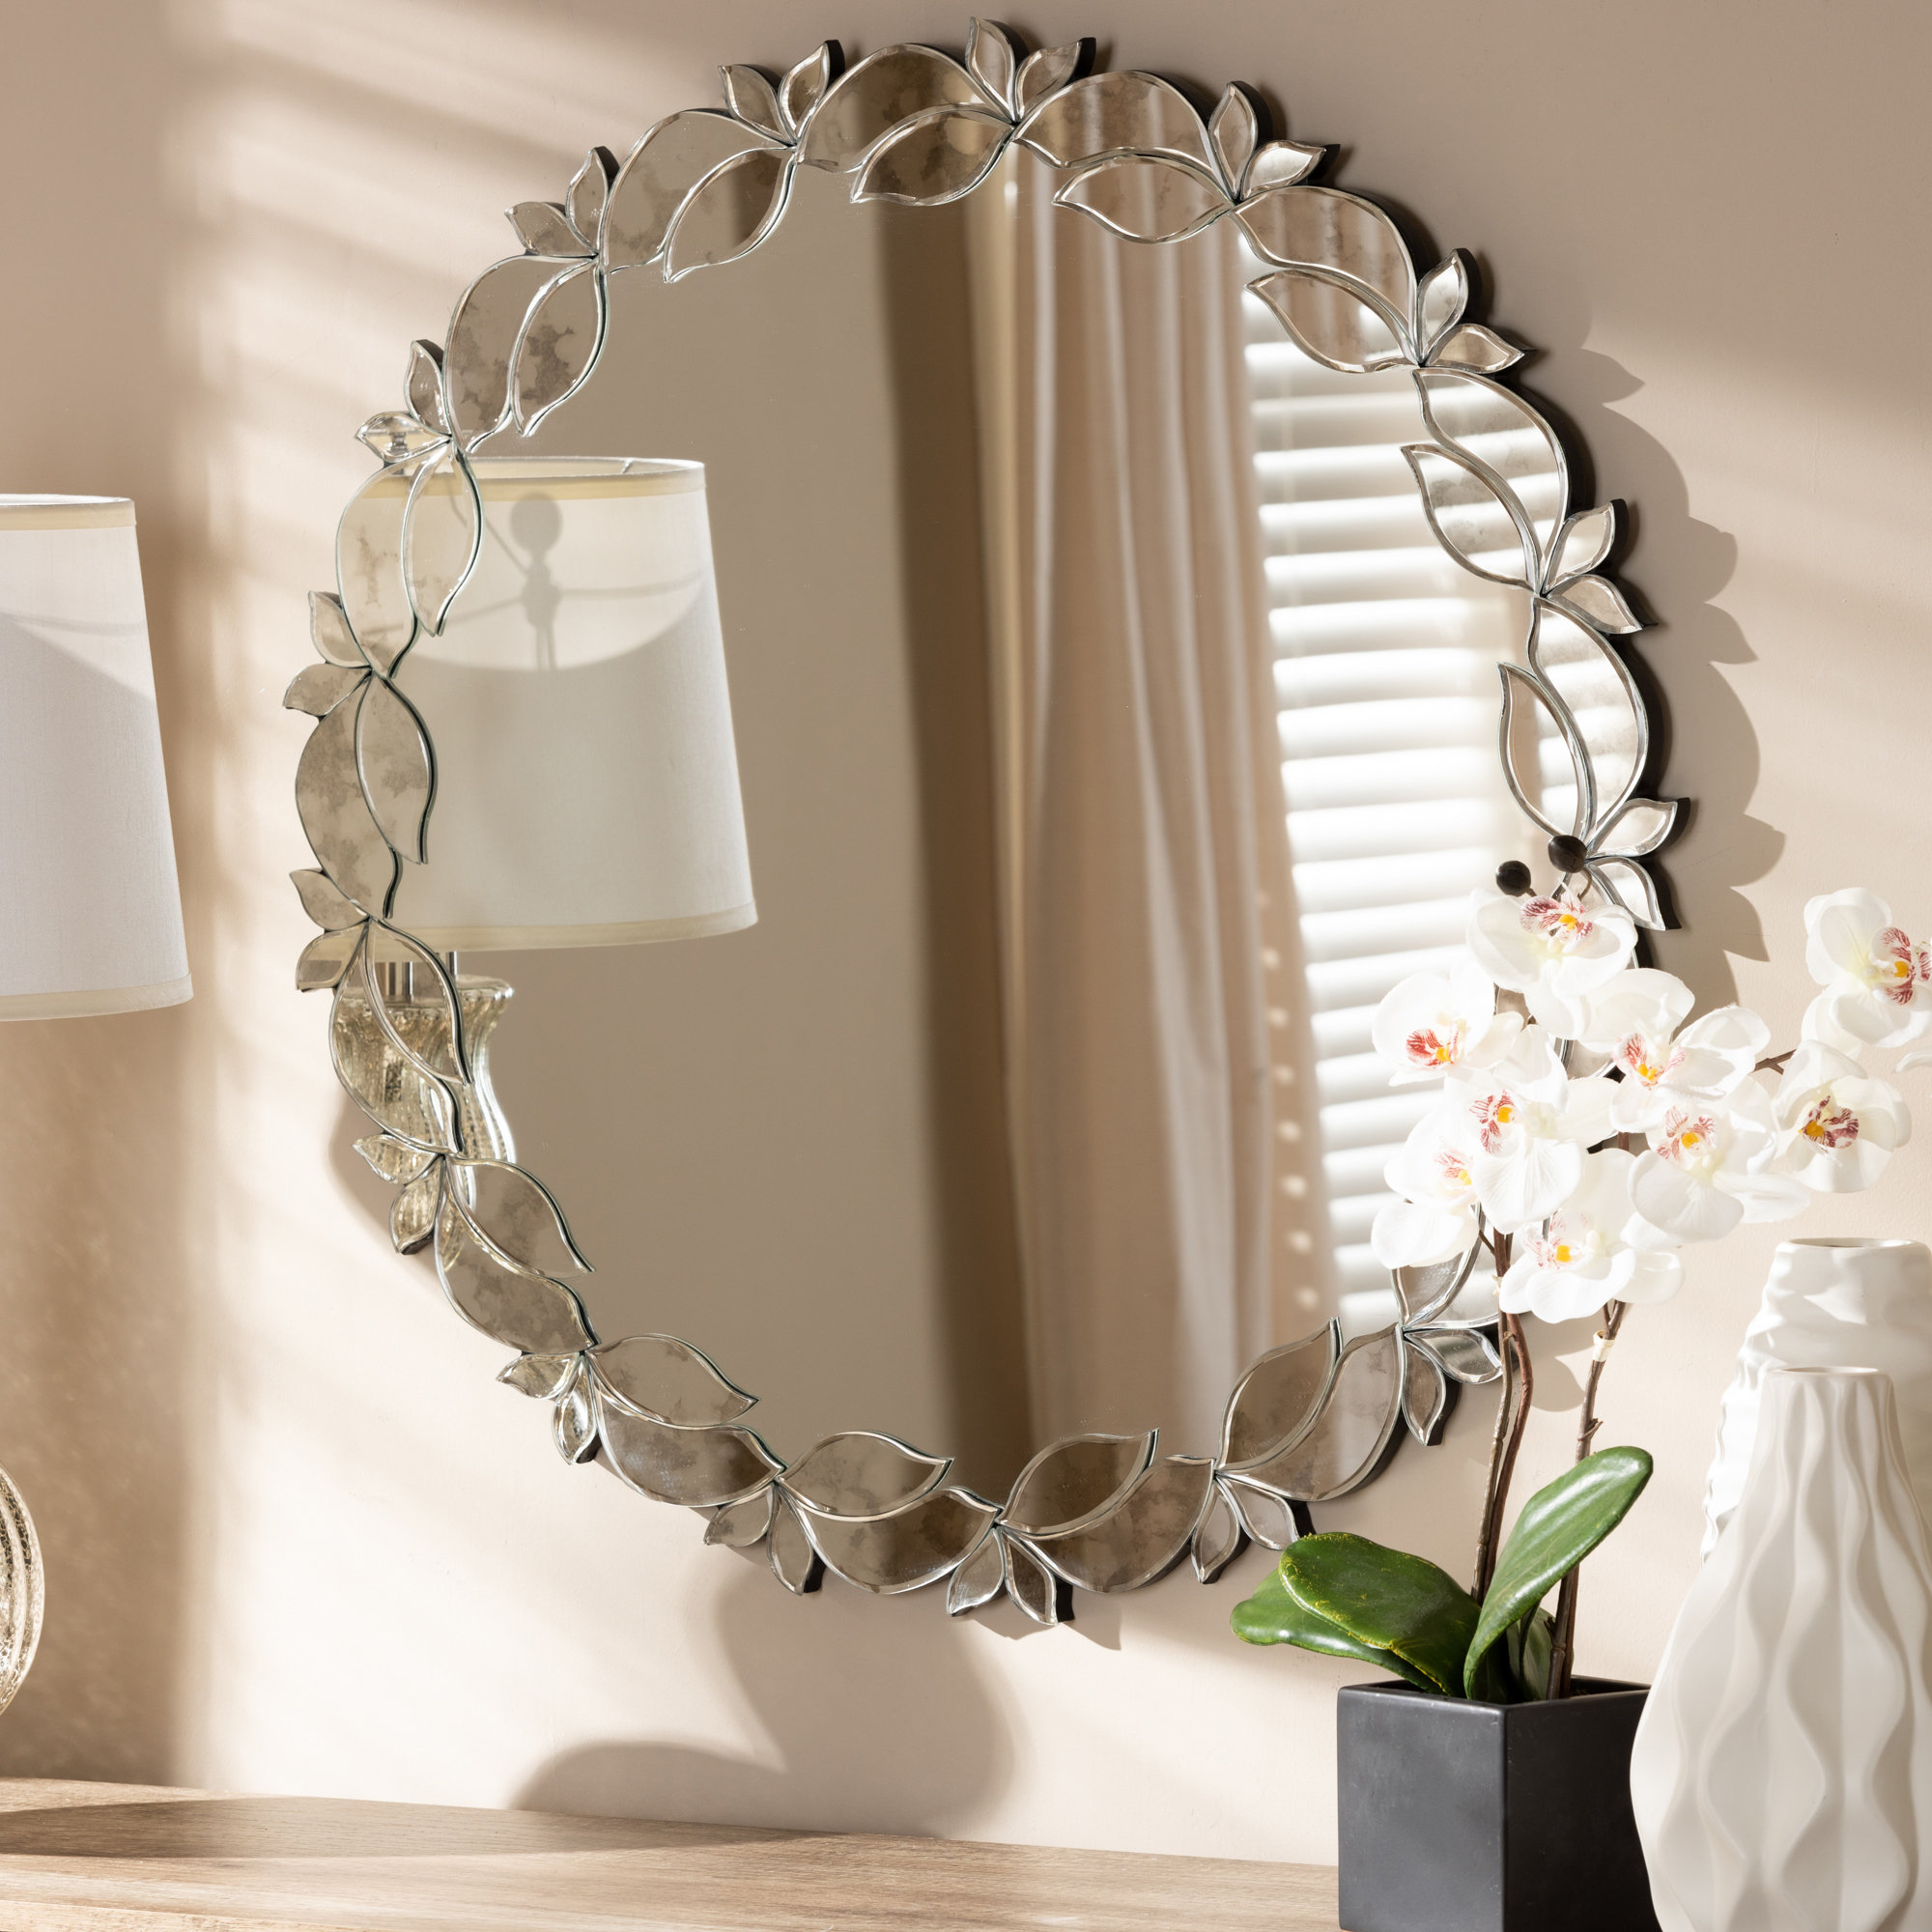 Widely Used Modern Contemporary Wall Mirrors Pertaining To Isom Modern & Contemporary Wall Mirror (View 20 of 20)